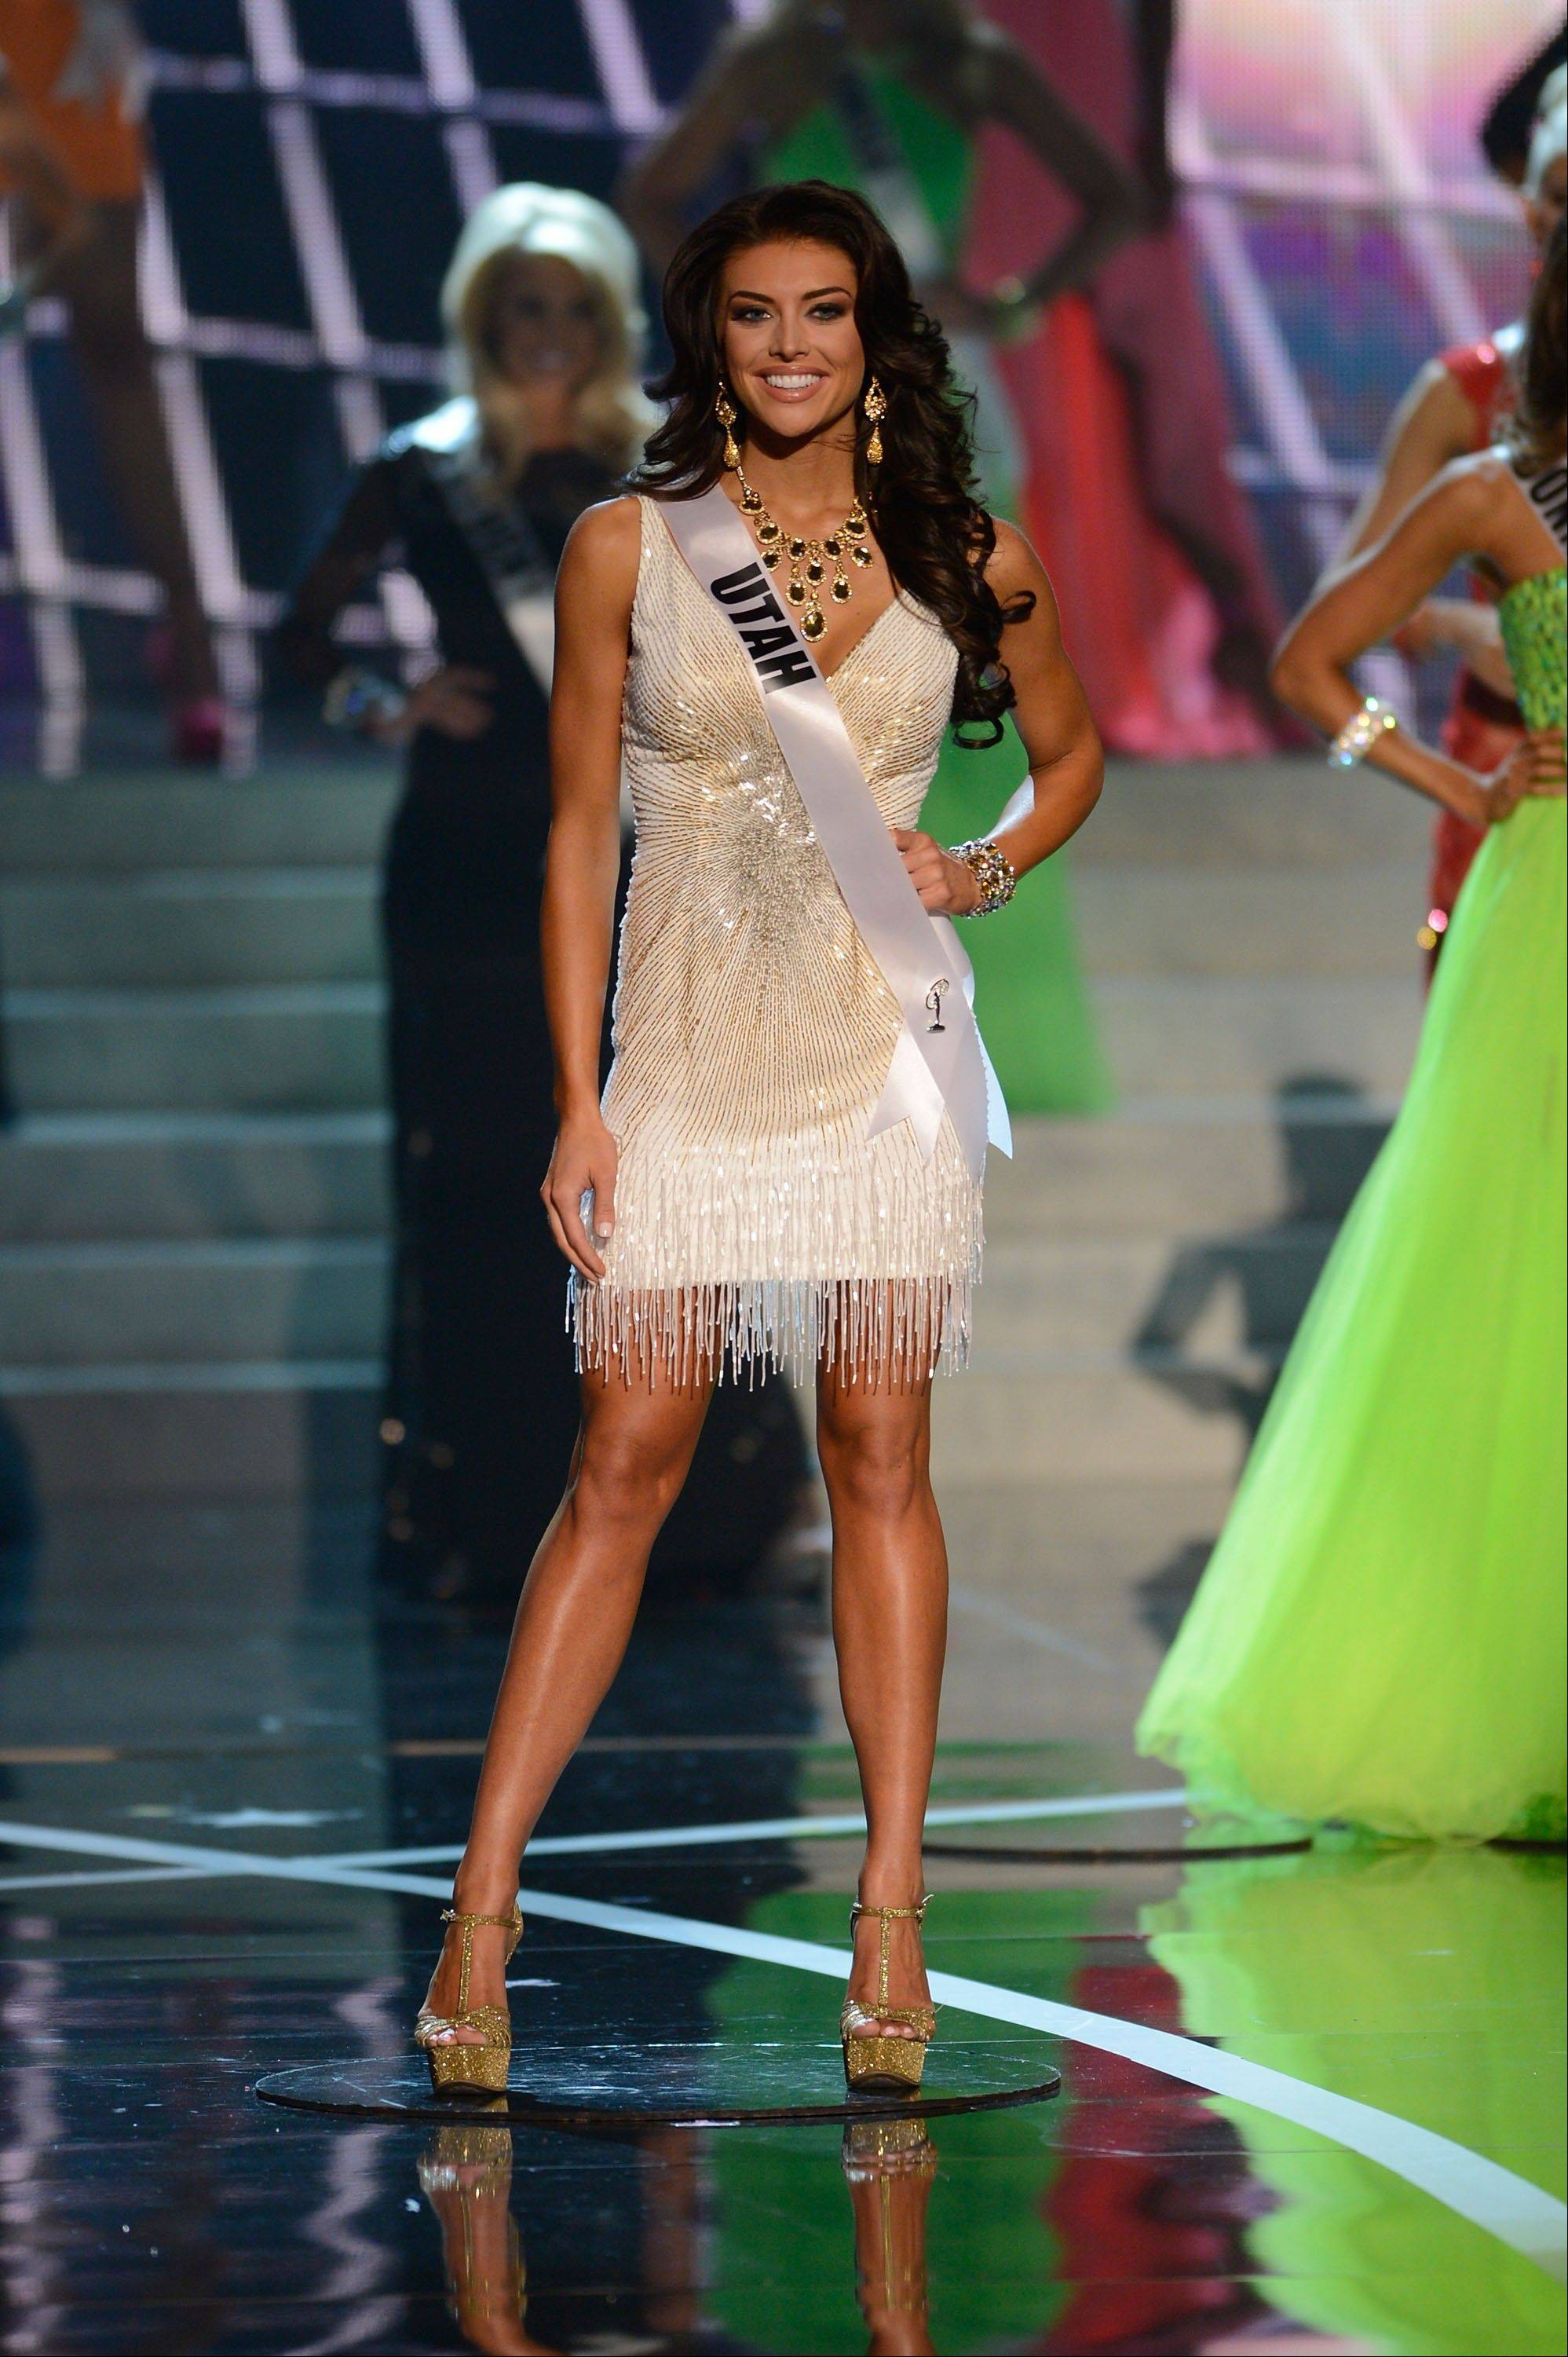 Miss Utah Marissa Powell walks the runway during the introductions of the Miss USA 2013 pageant.